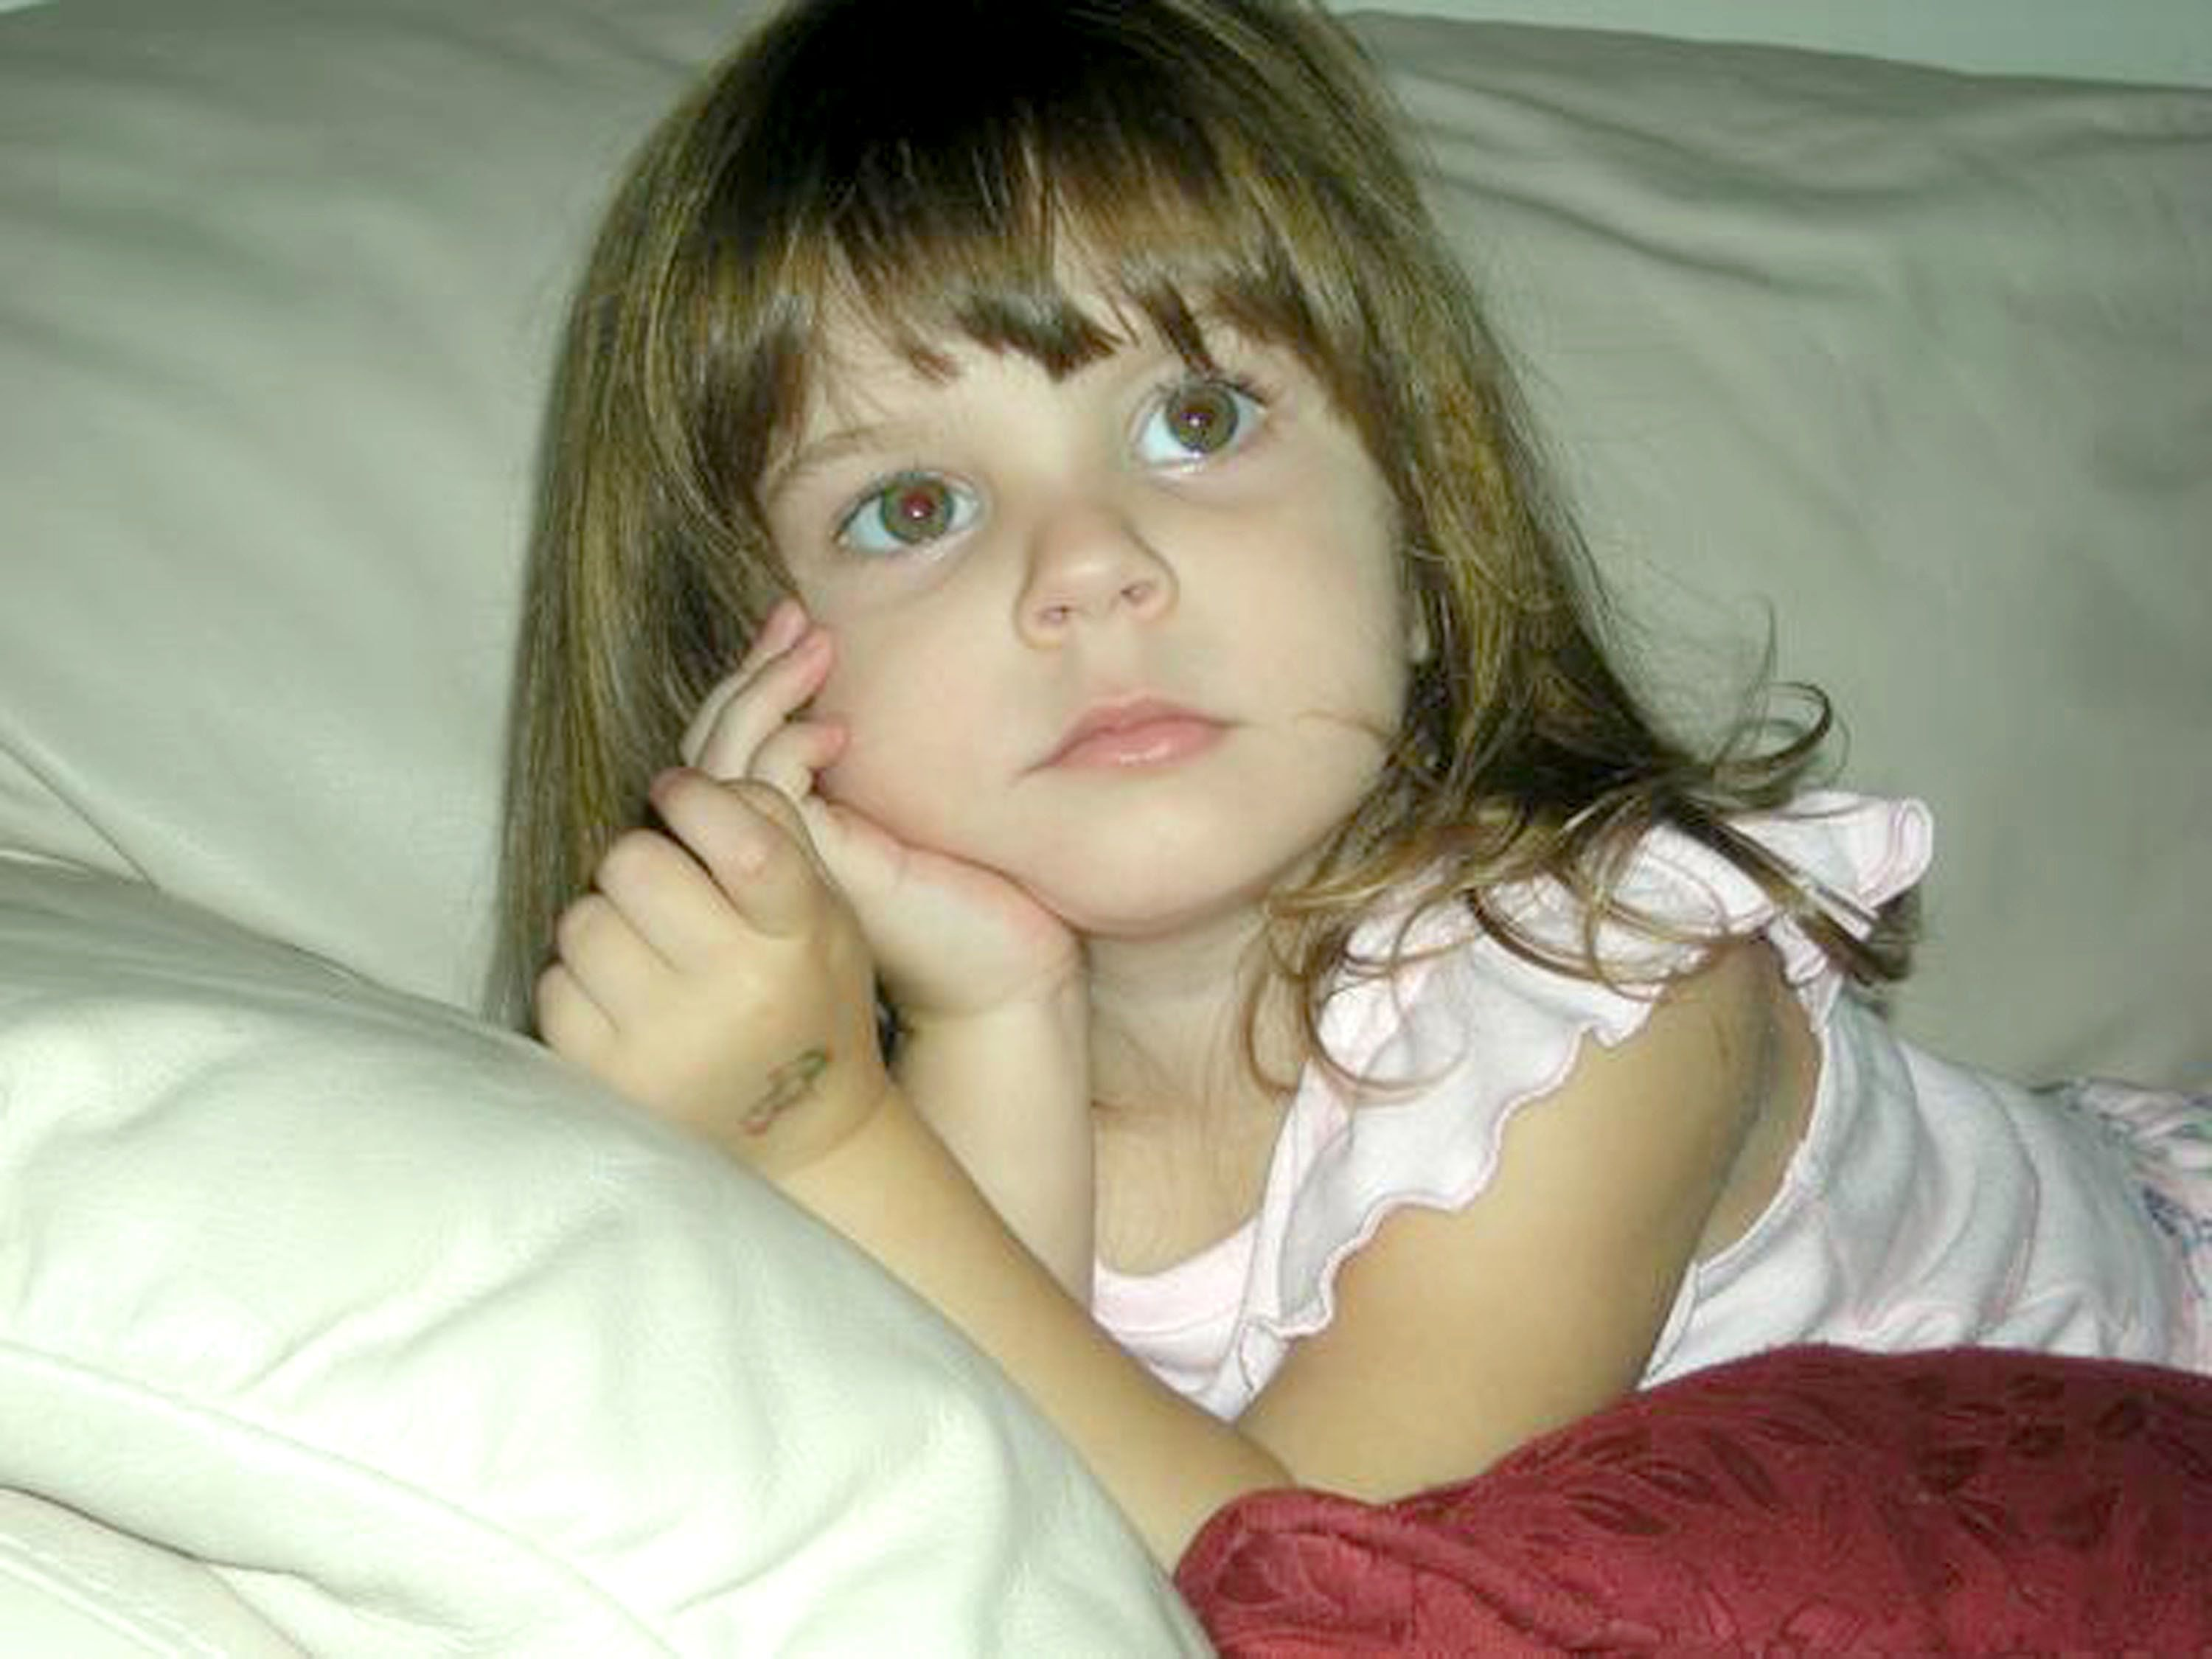 No one was ever convicted of killing the 2-year-old whose body was found buried near her home in 2008, months after she